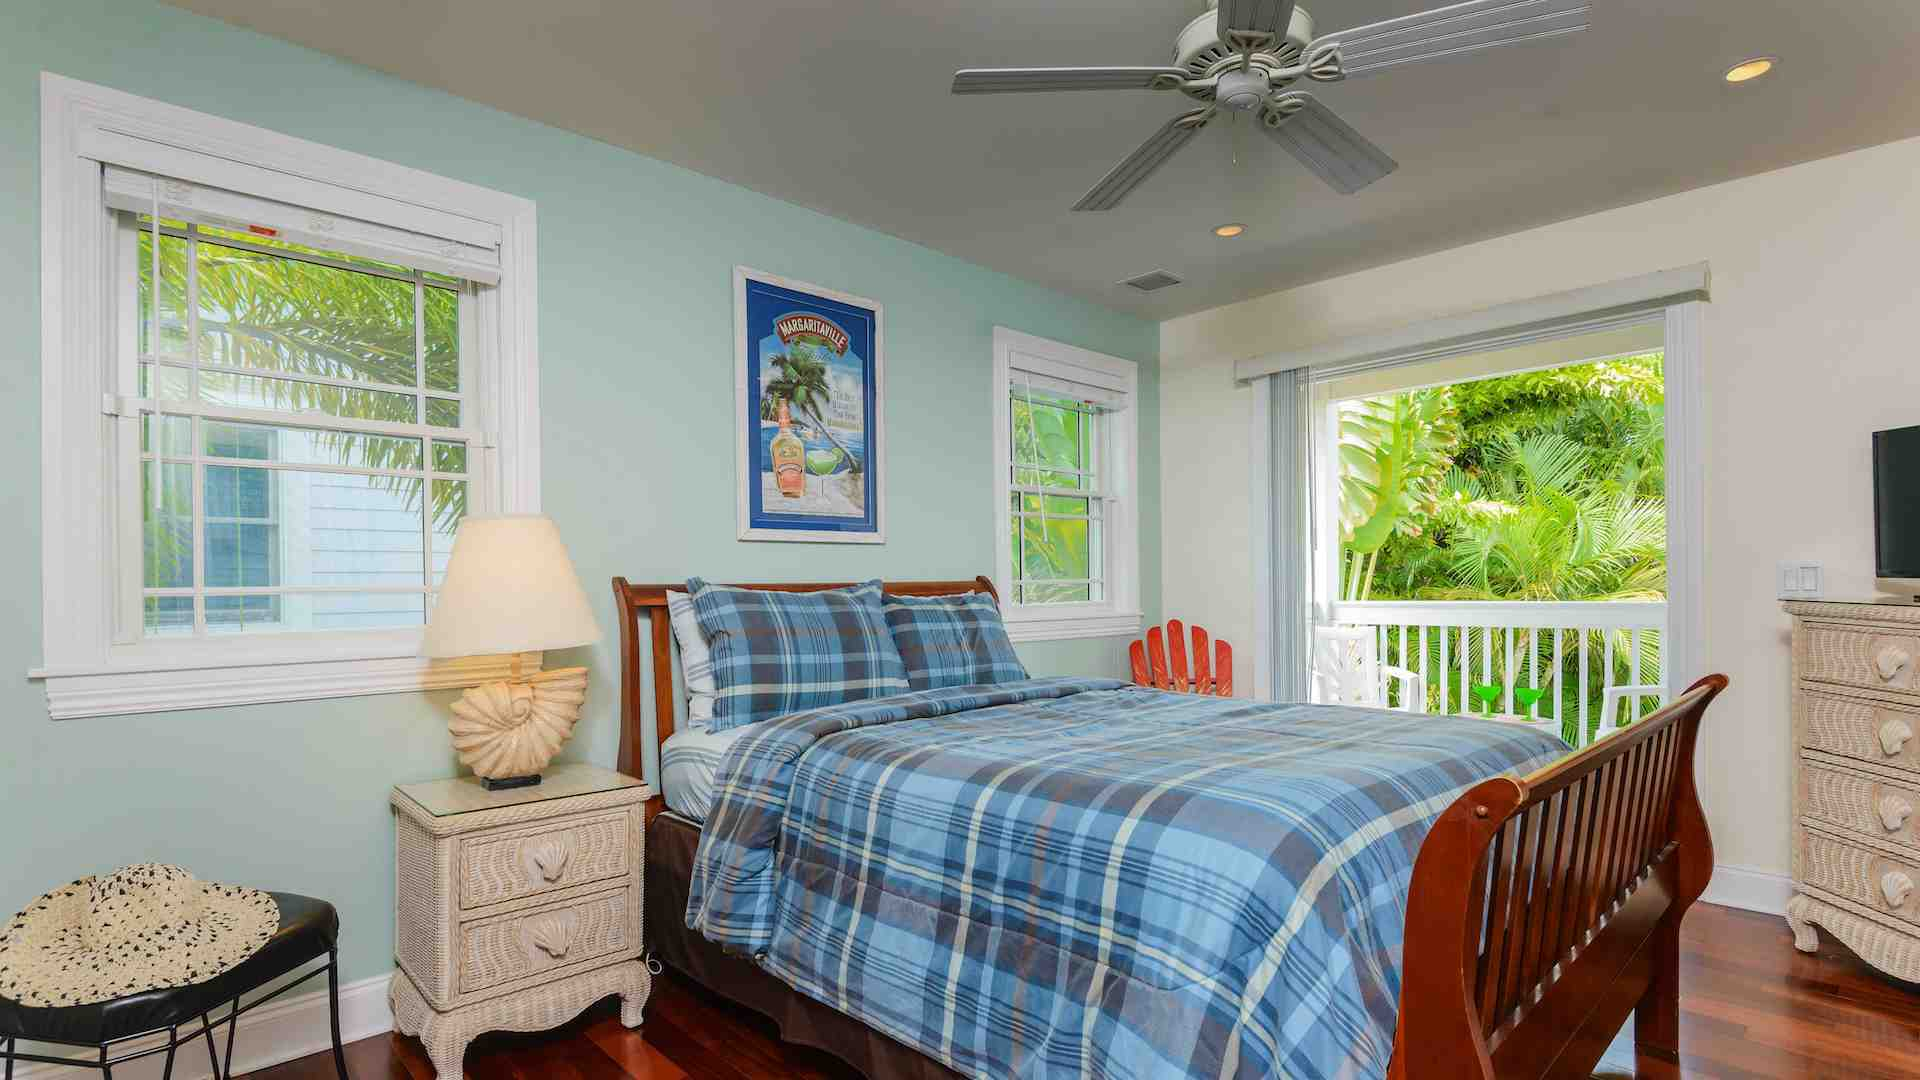 The third bedroom has a Queen sized bed & balcony access...